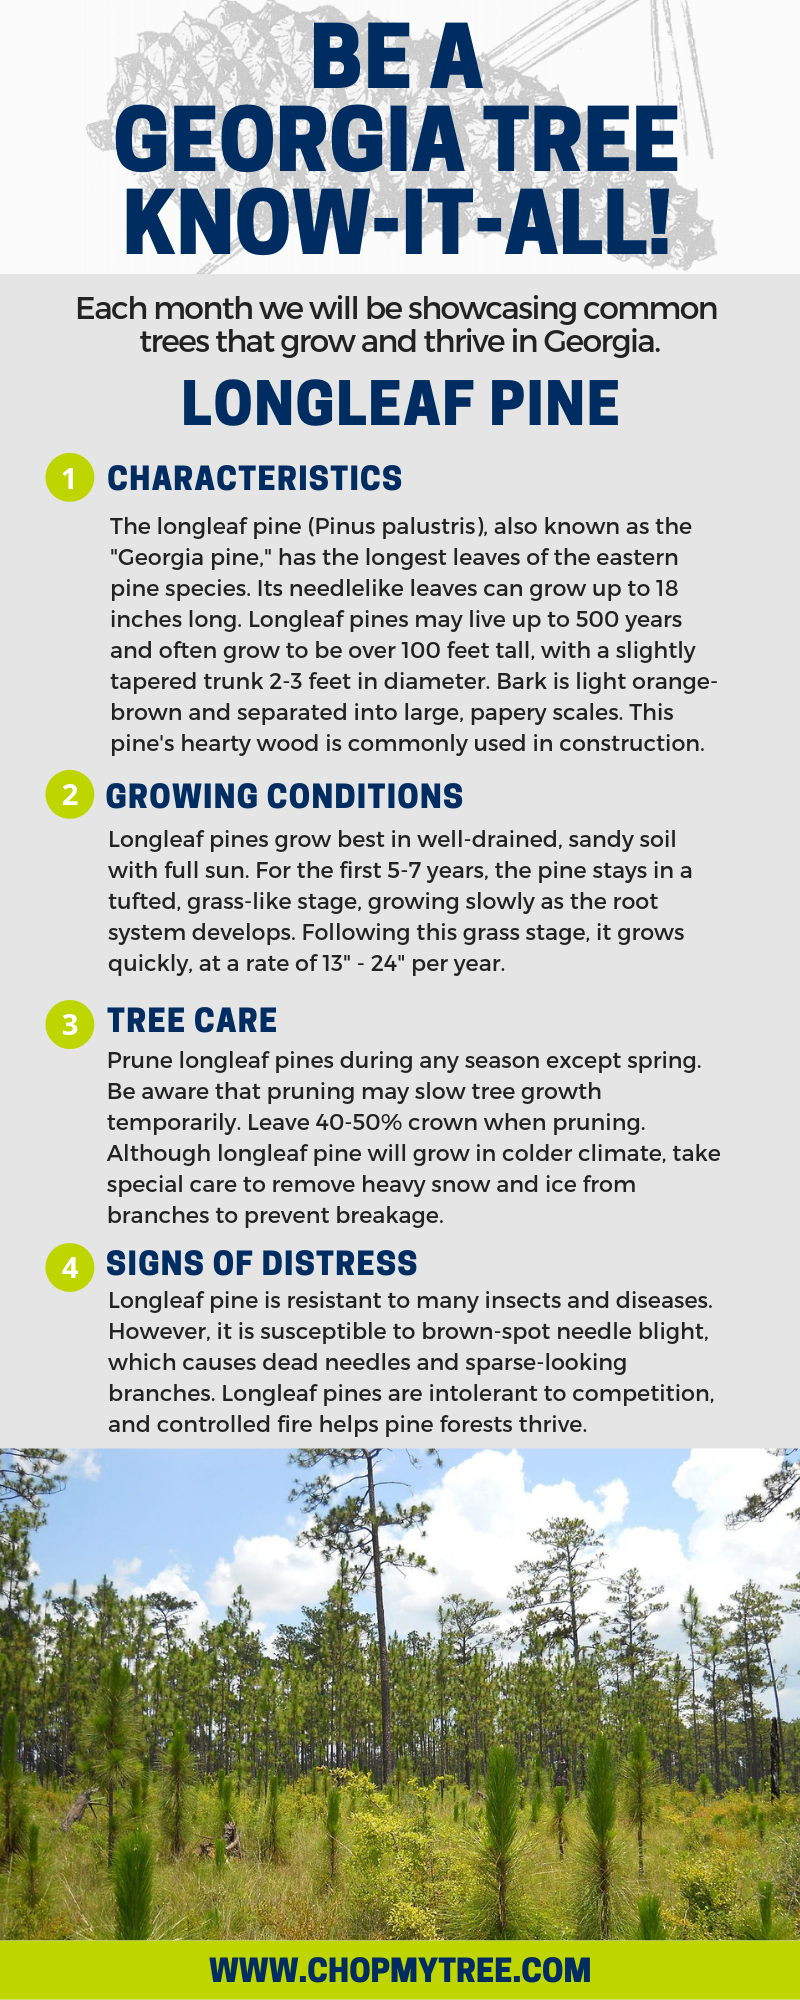 Longleaf Pine Text Infographic